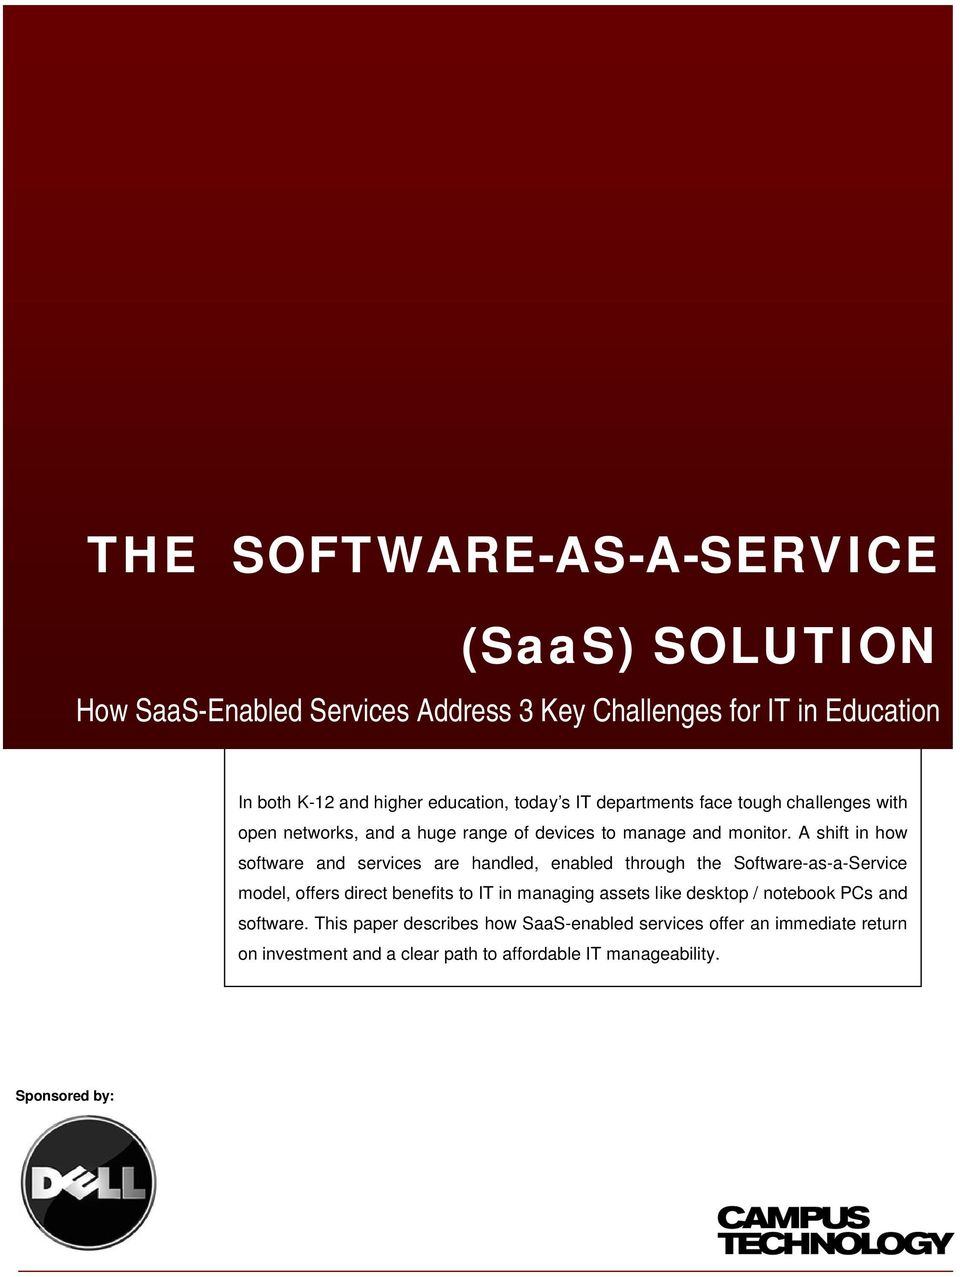 A shift in how software and services are handled, enabled through the Software-as-a-Service model, offers direct benefits to IT in managing assets